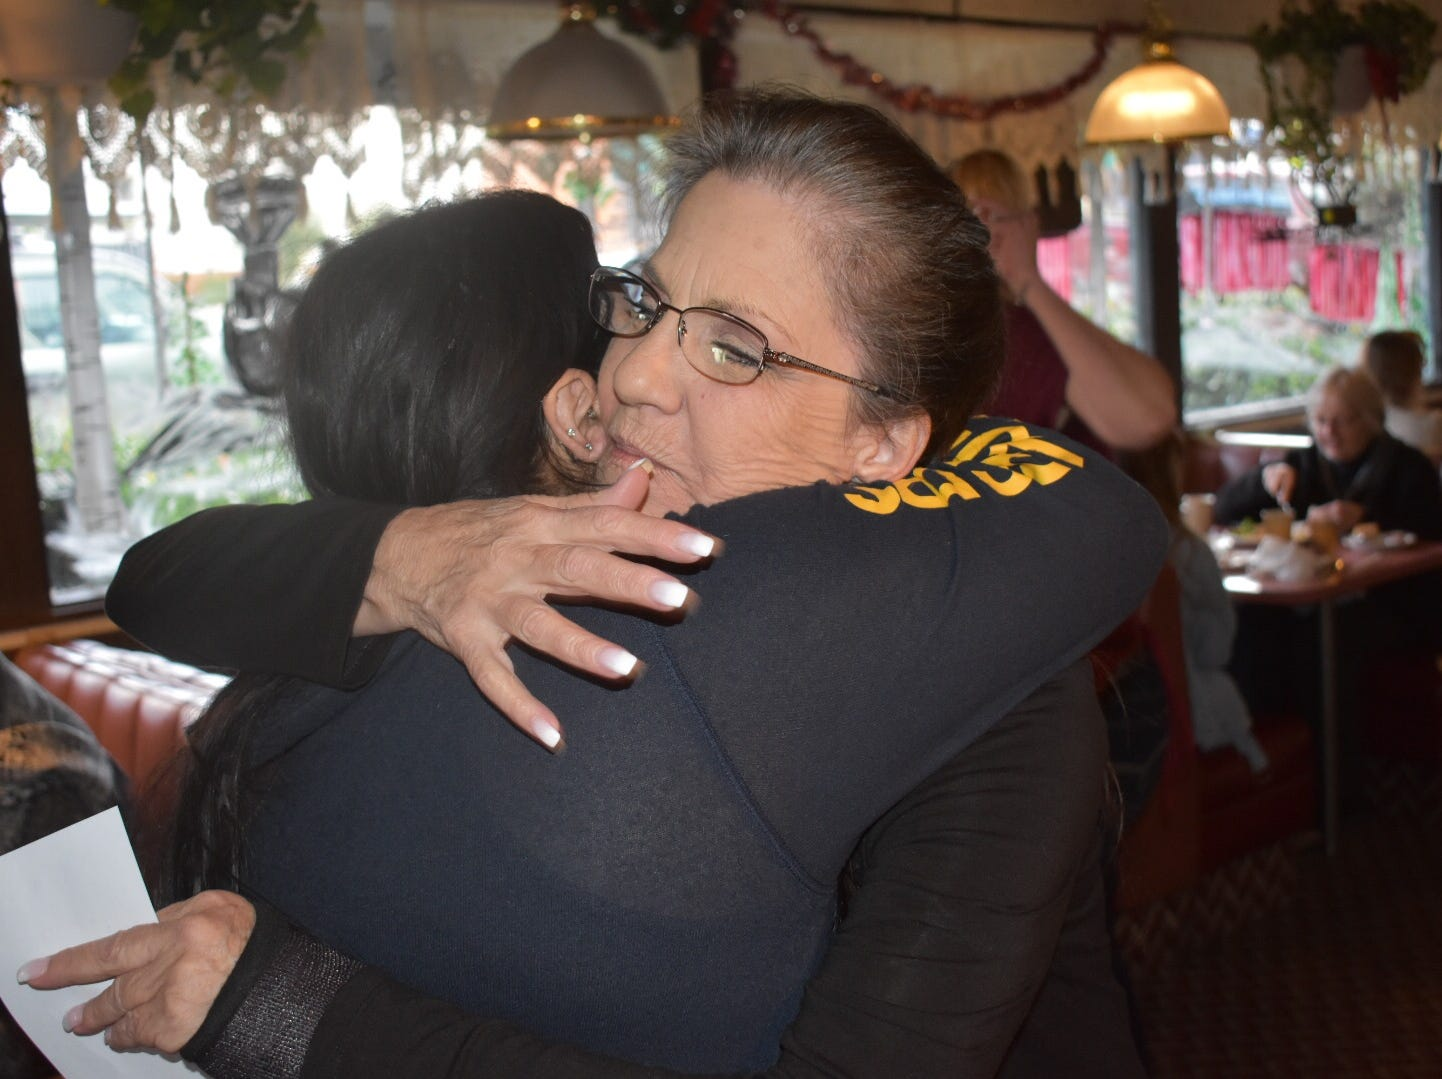 Vagabond Restaurant employee Chris Frank, right, hugs customer Blanca Garcia on Monday. The 52-year-old restaurant closes Tuesday though its landlord says it will reopen.